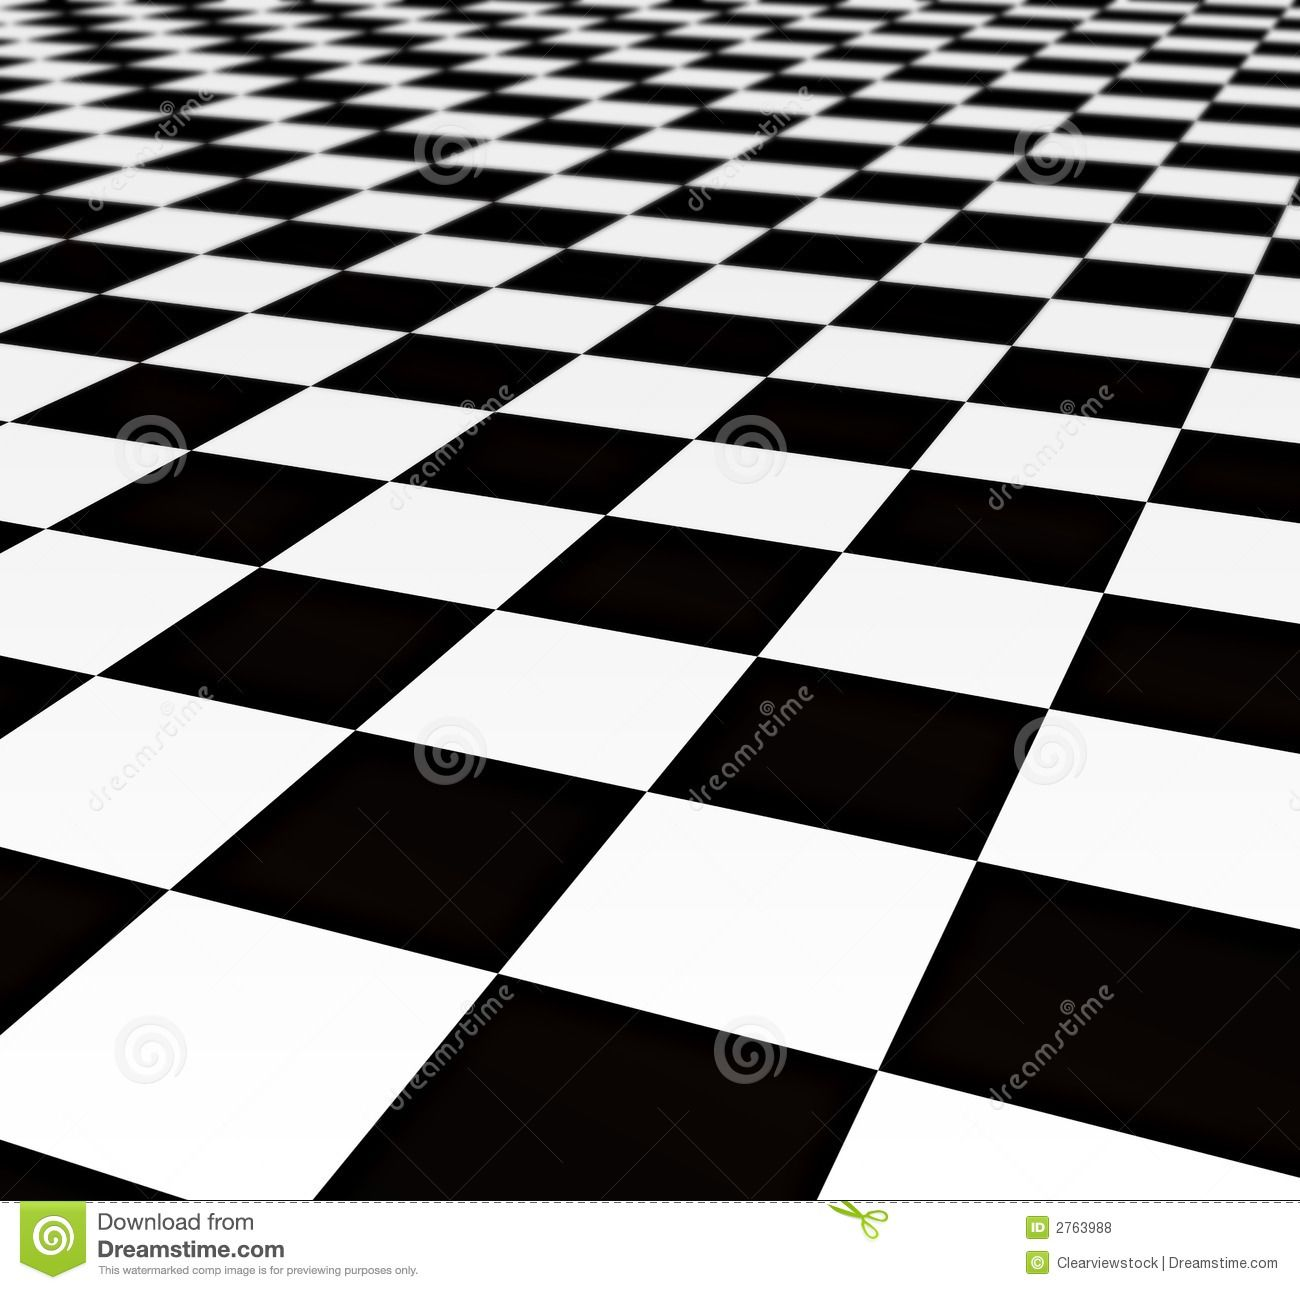 Black and white check floor legally blonde pinterest legally red and white floor tiles stock illustration dailygadgetfo Choice Image